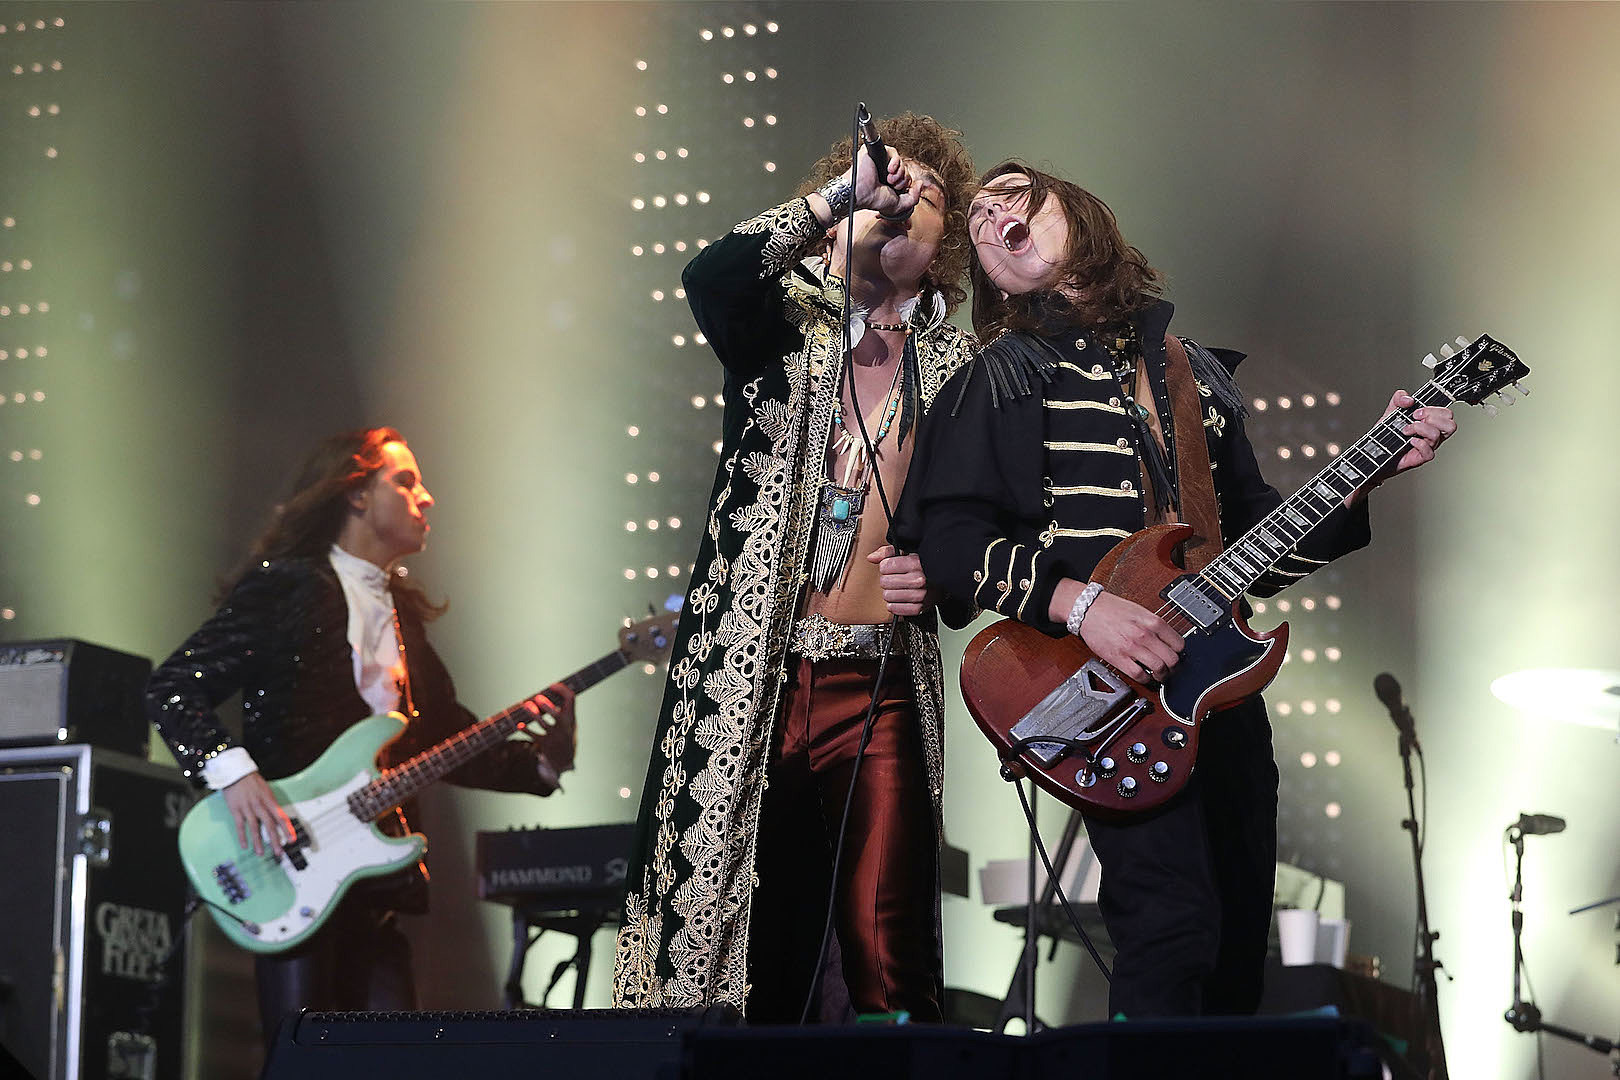 Greta Van Fleet 'Working on Something Quite Different' for Second Album